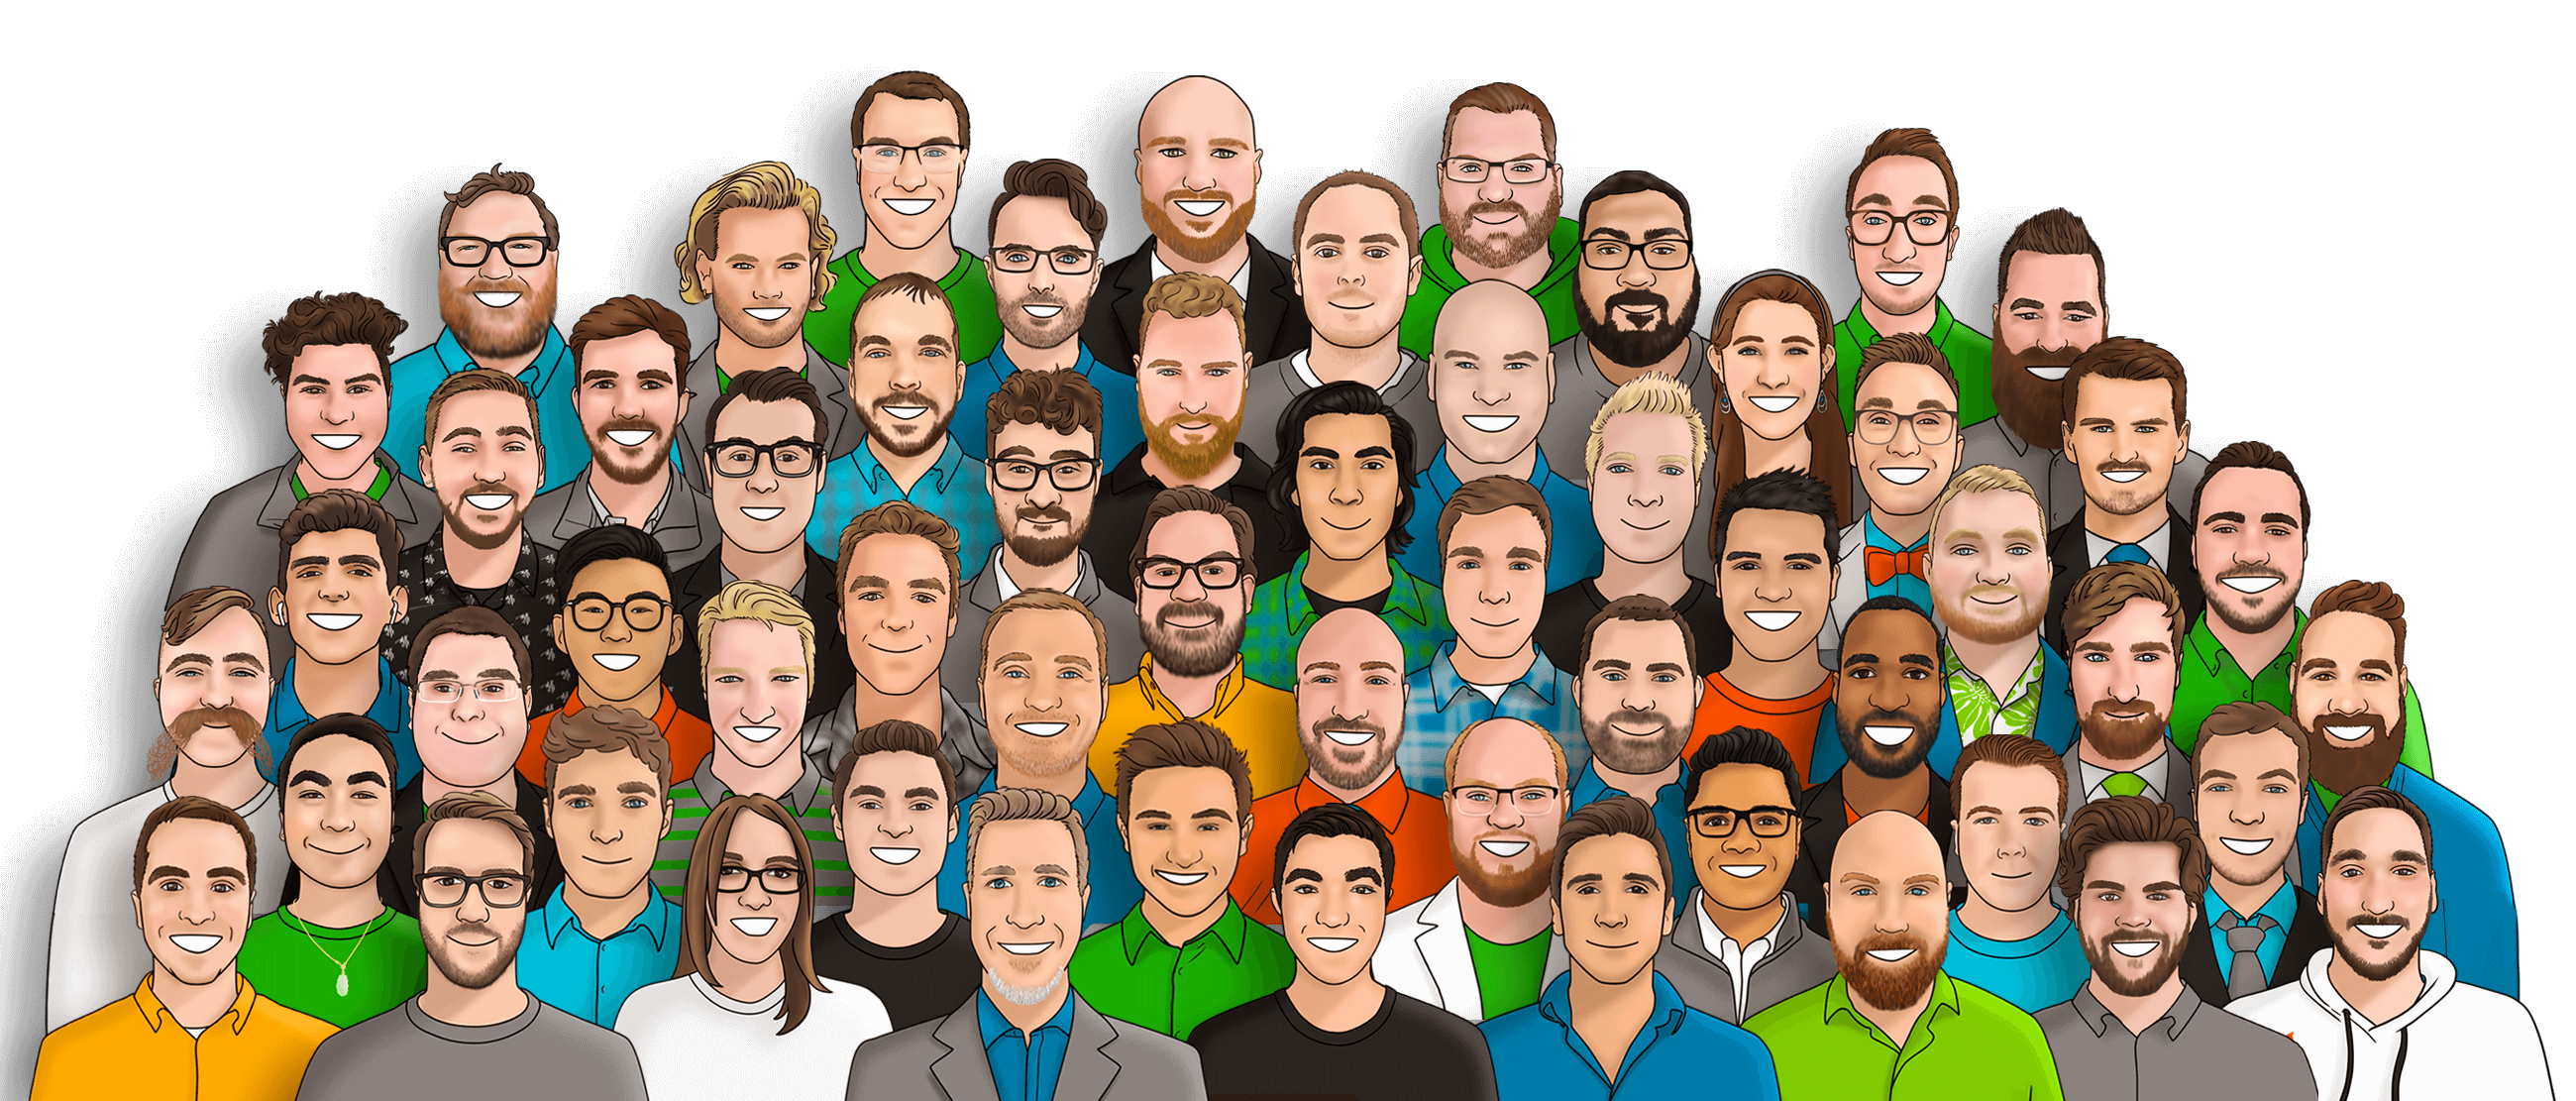 An illustration of the Liatrio Team.